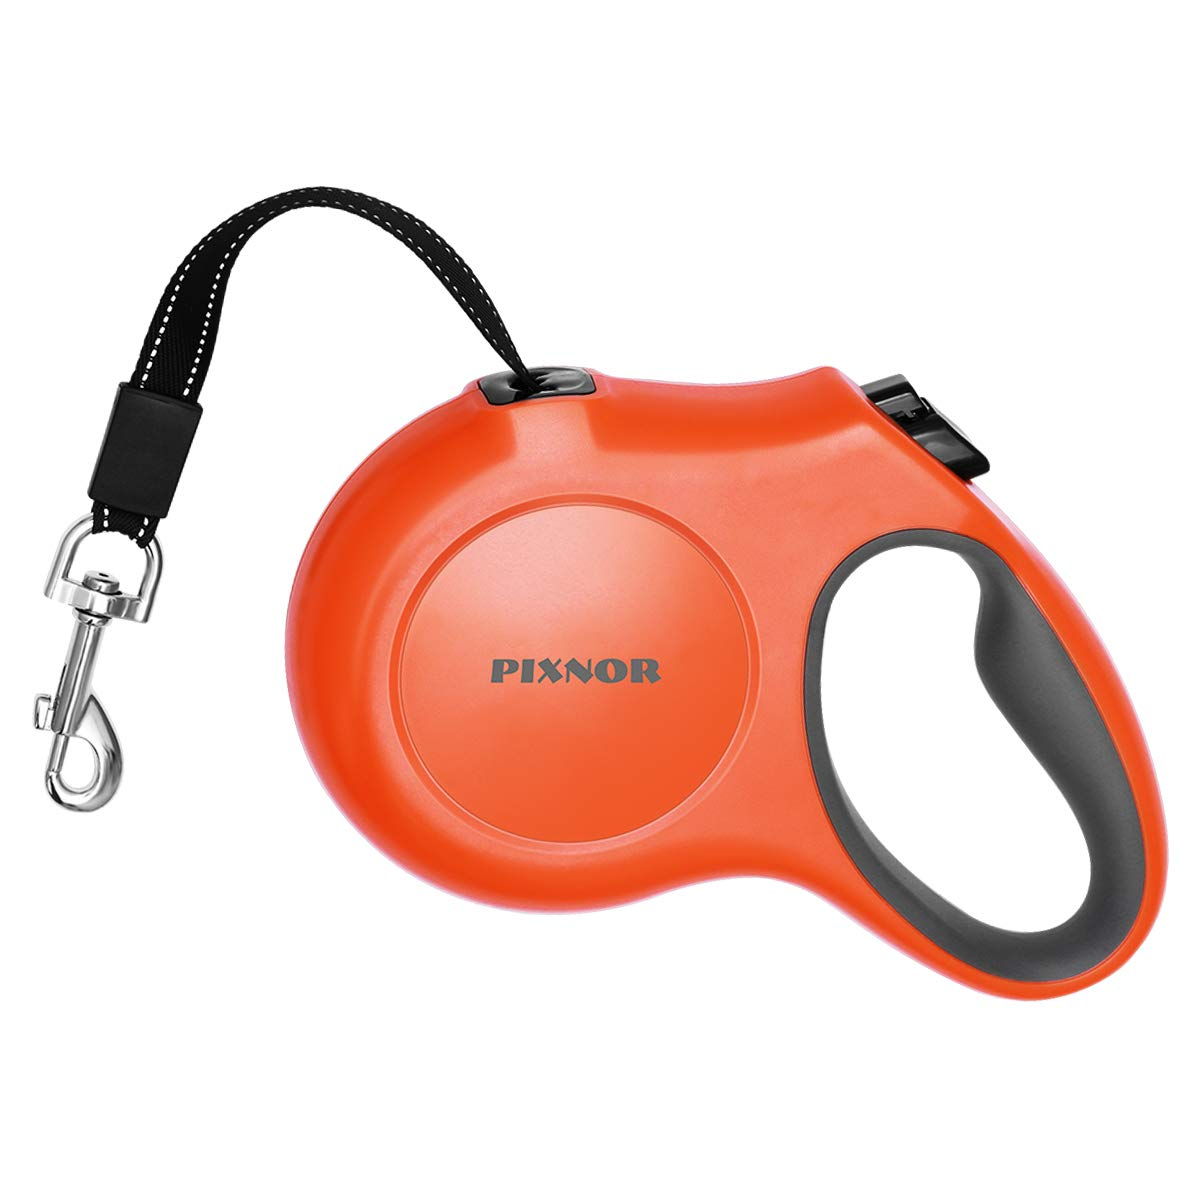 PIXNOR Retractable Dog Leash 5M for Small Medium and Large Breed (Size L & Orange)